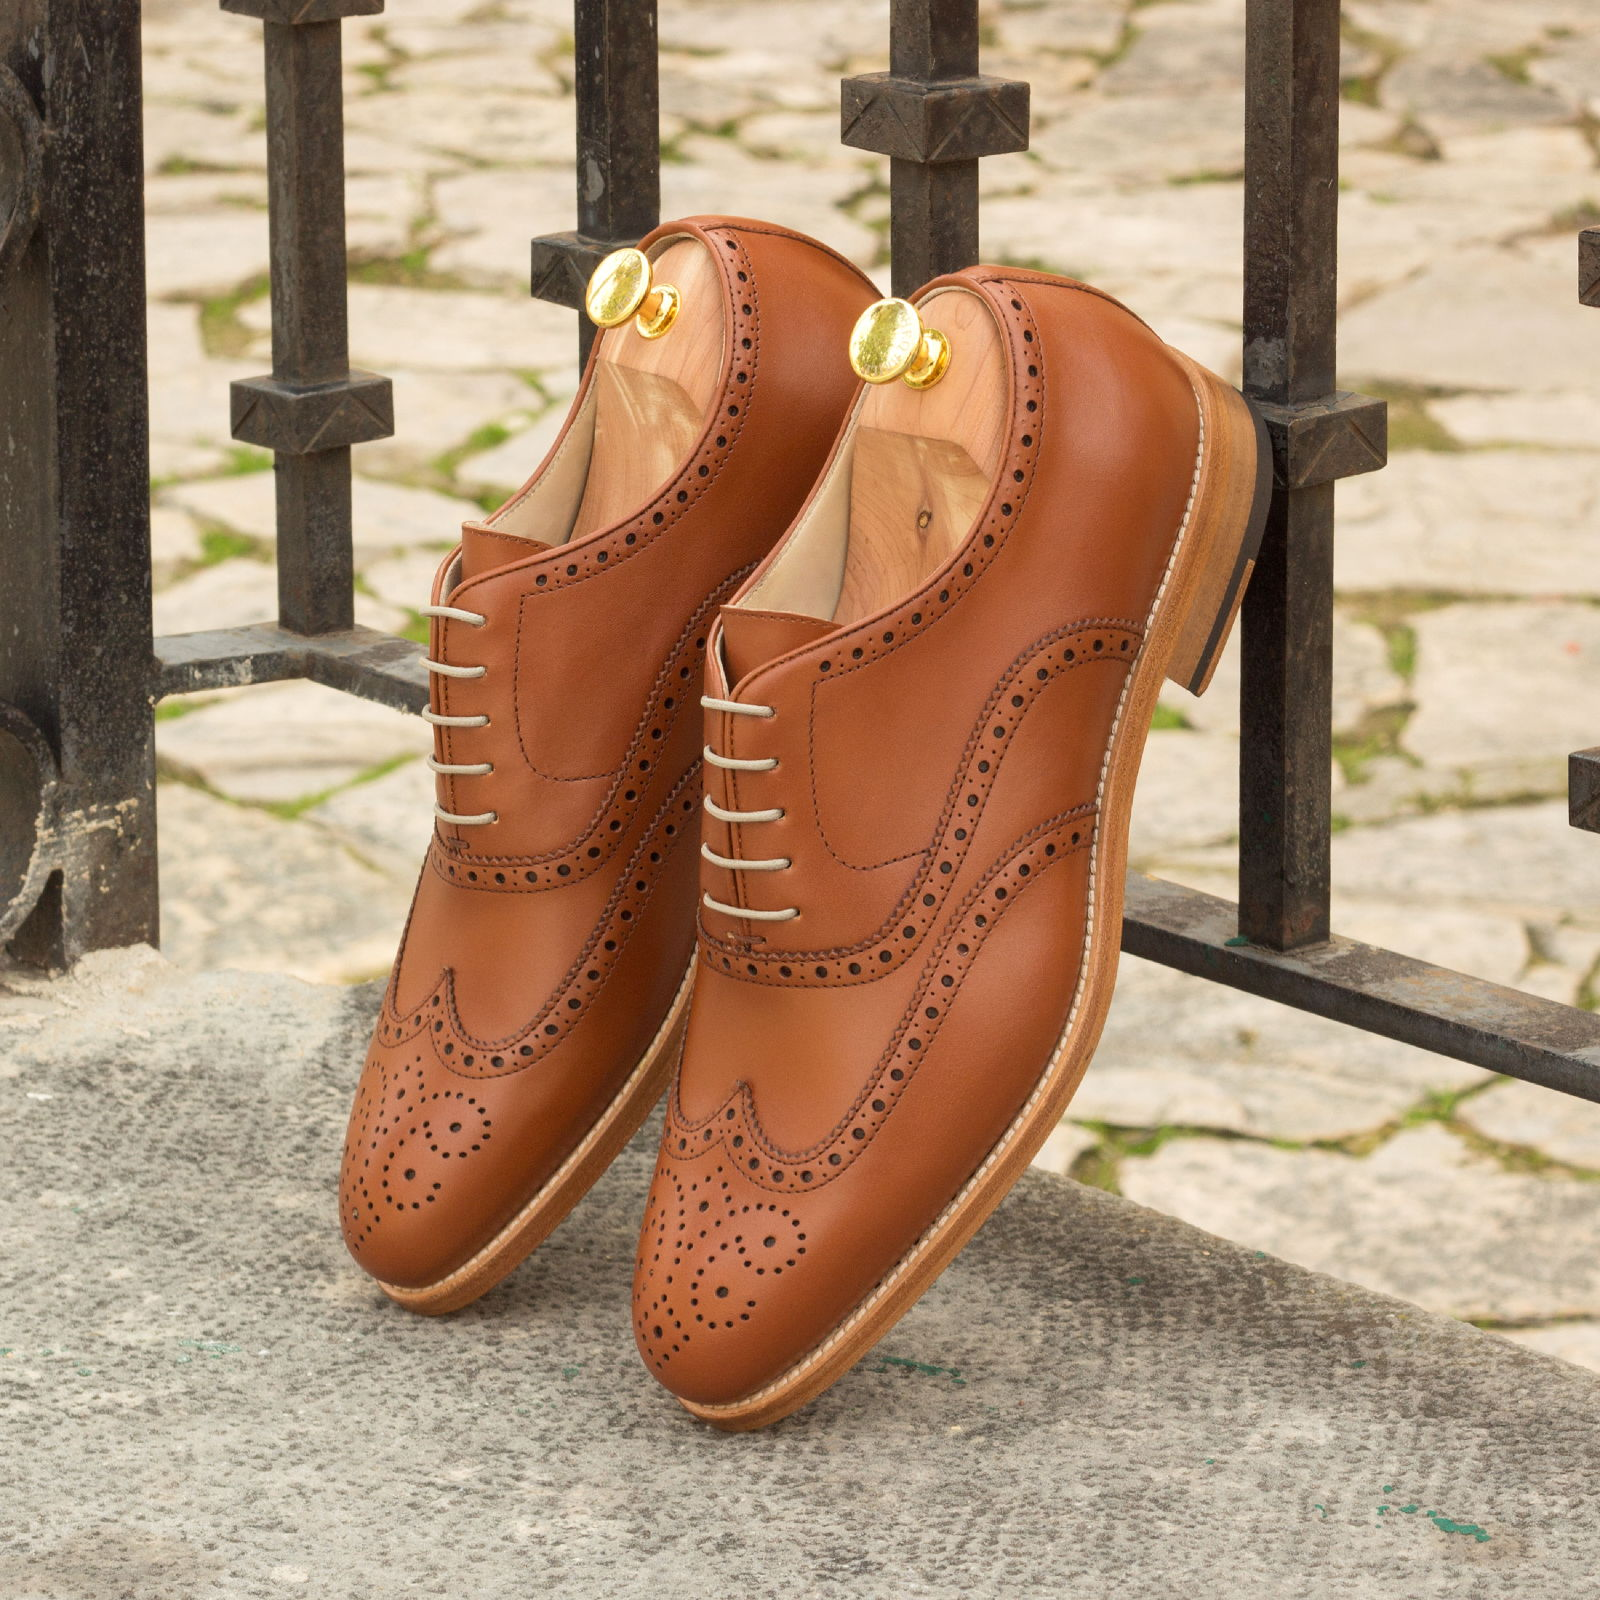 Full brogue cognac box calf : 240€